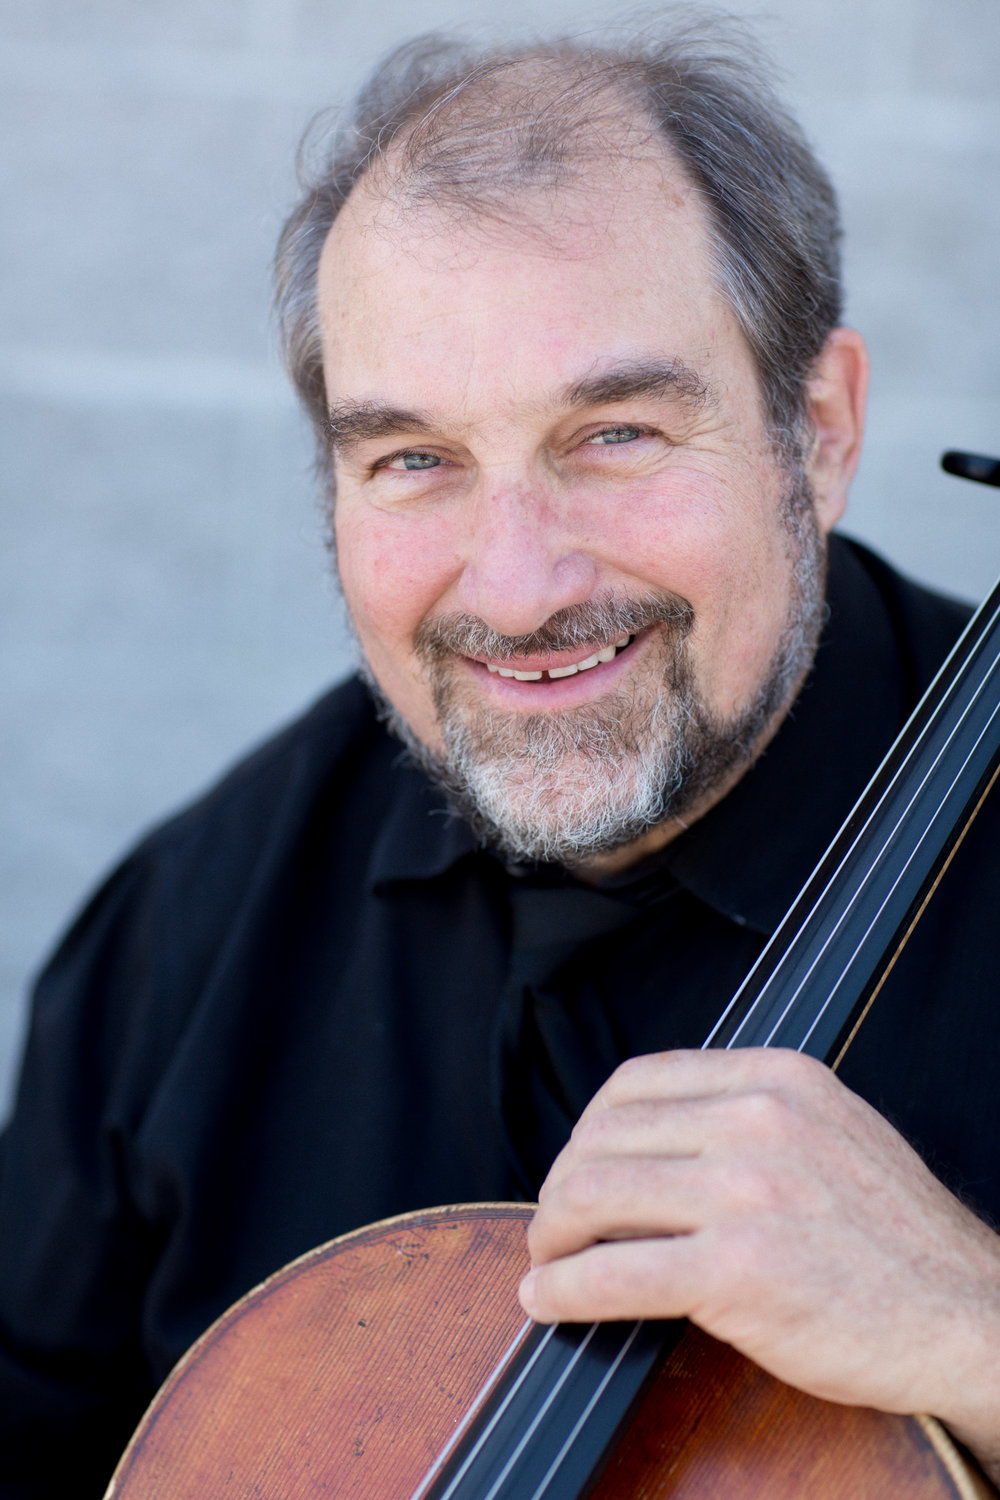 Joel Cohen, cello